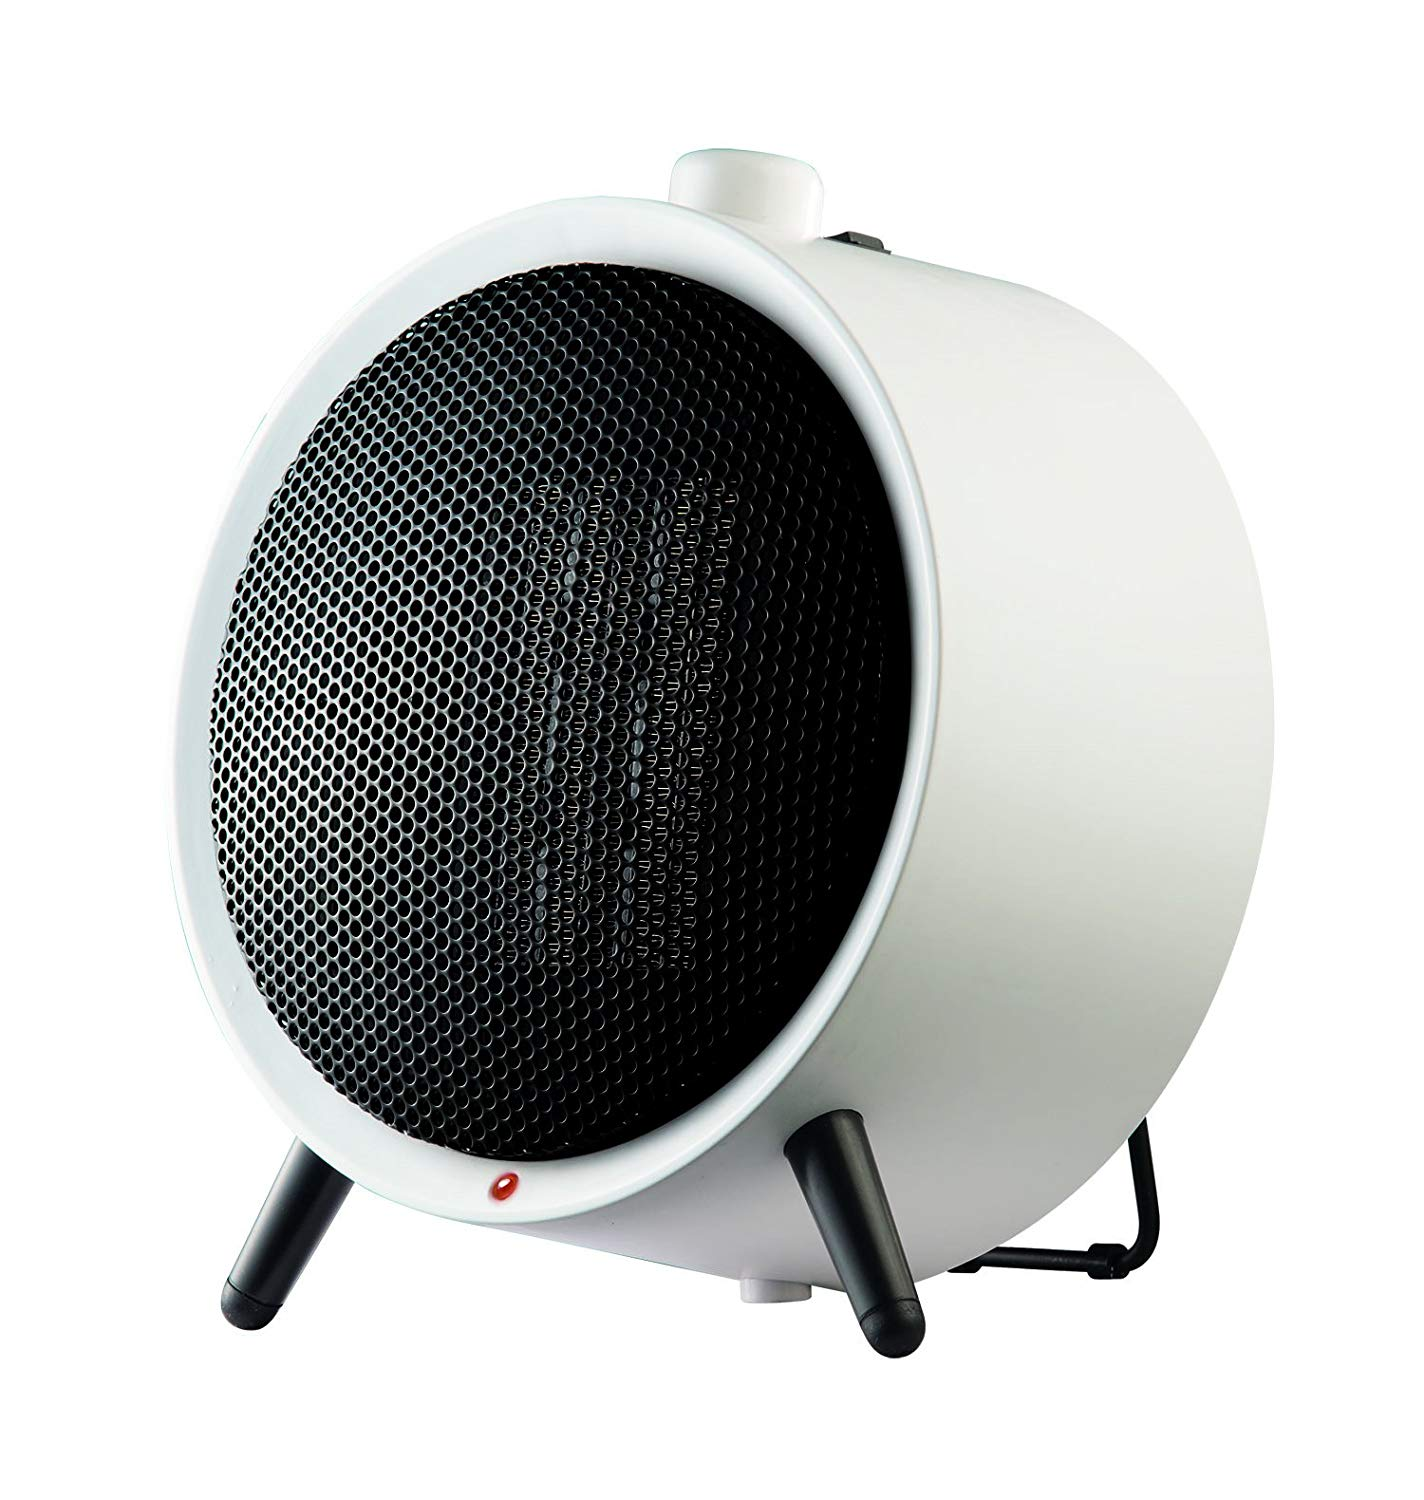 Honeywell HCE200W best space heater